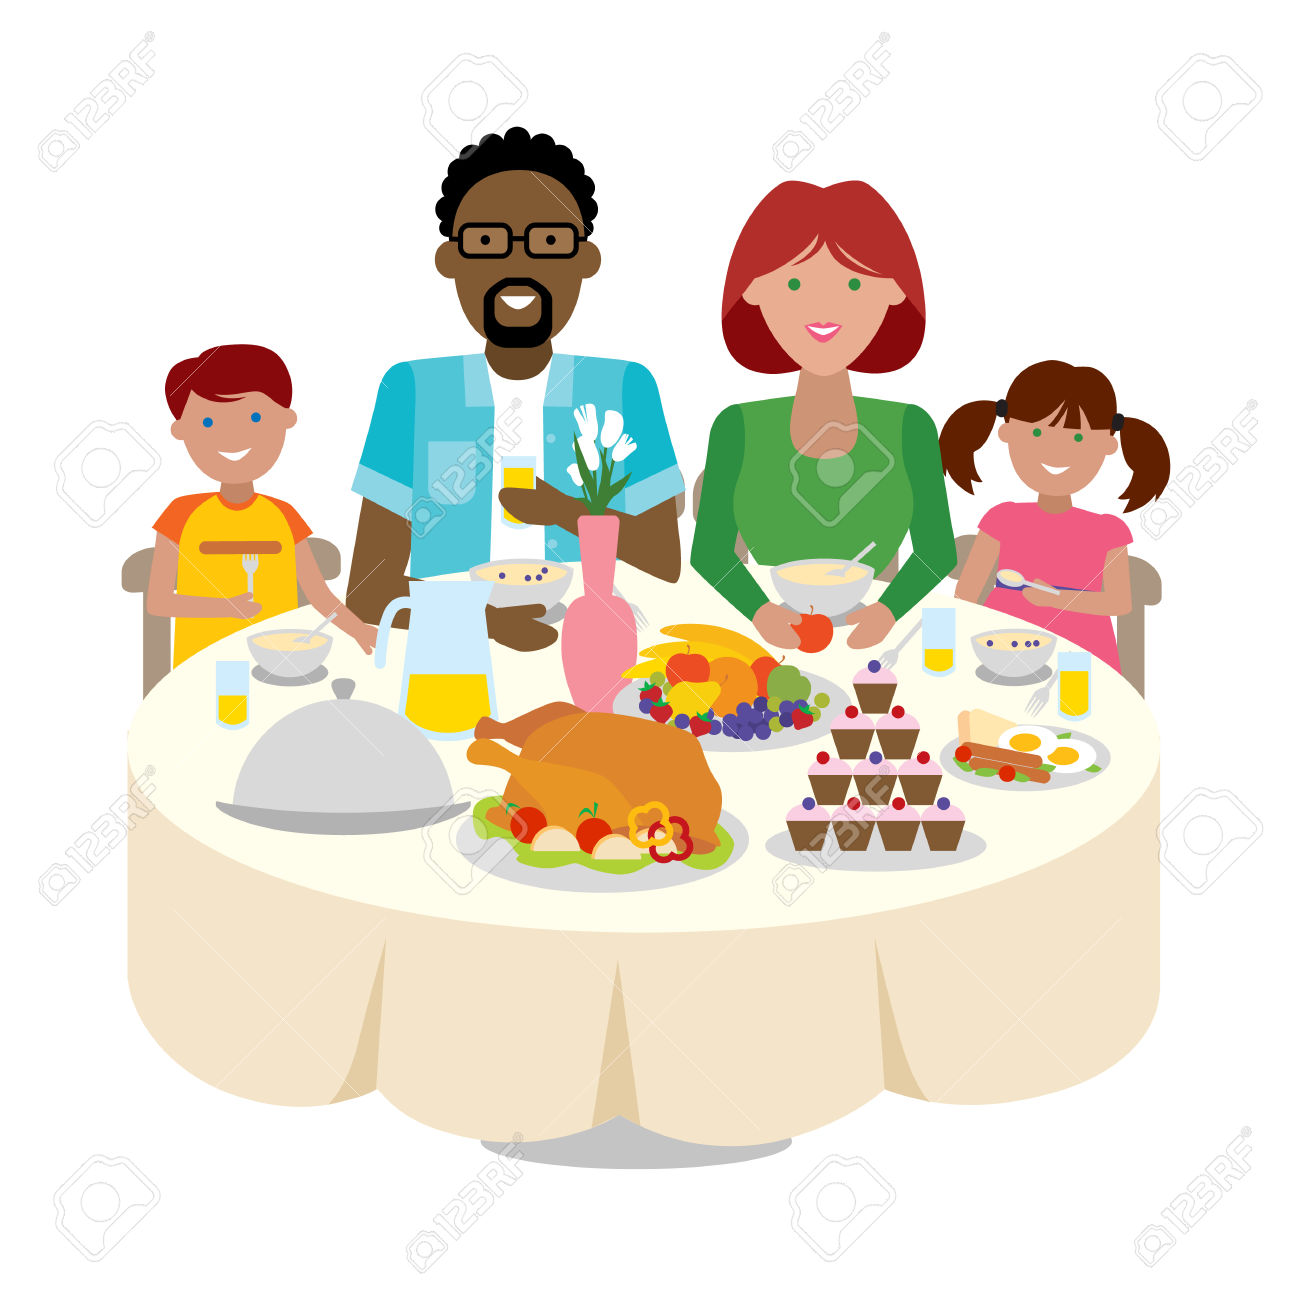 Dinner table free download. Feast clipart family dining